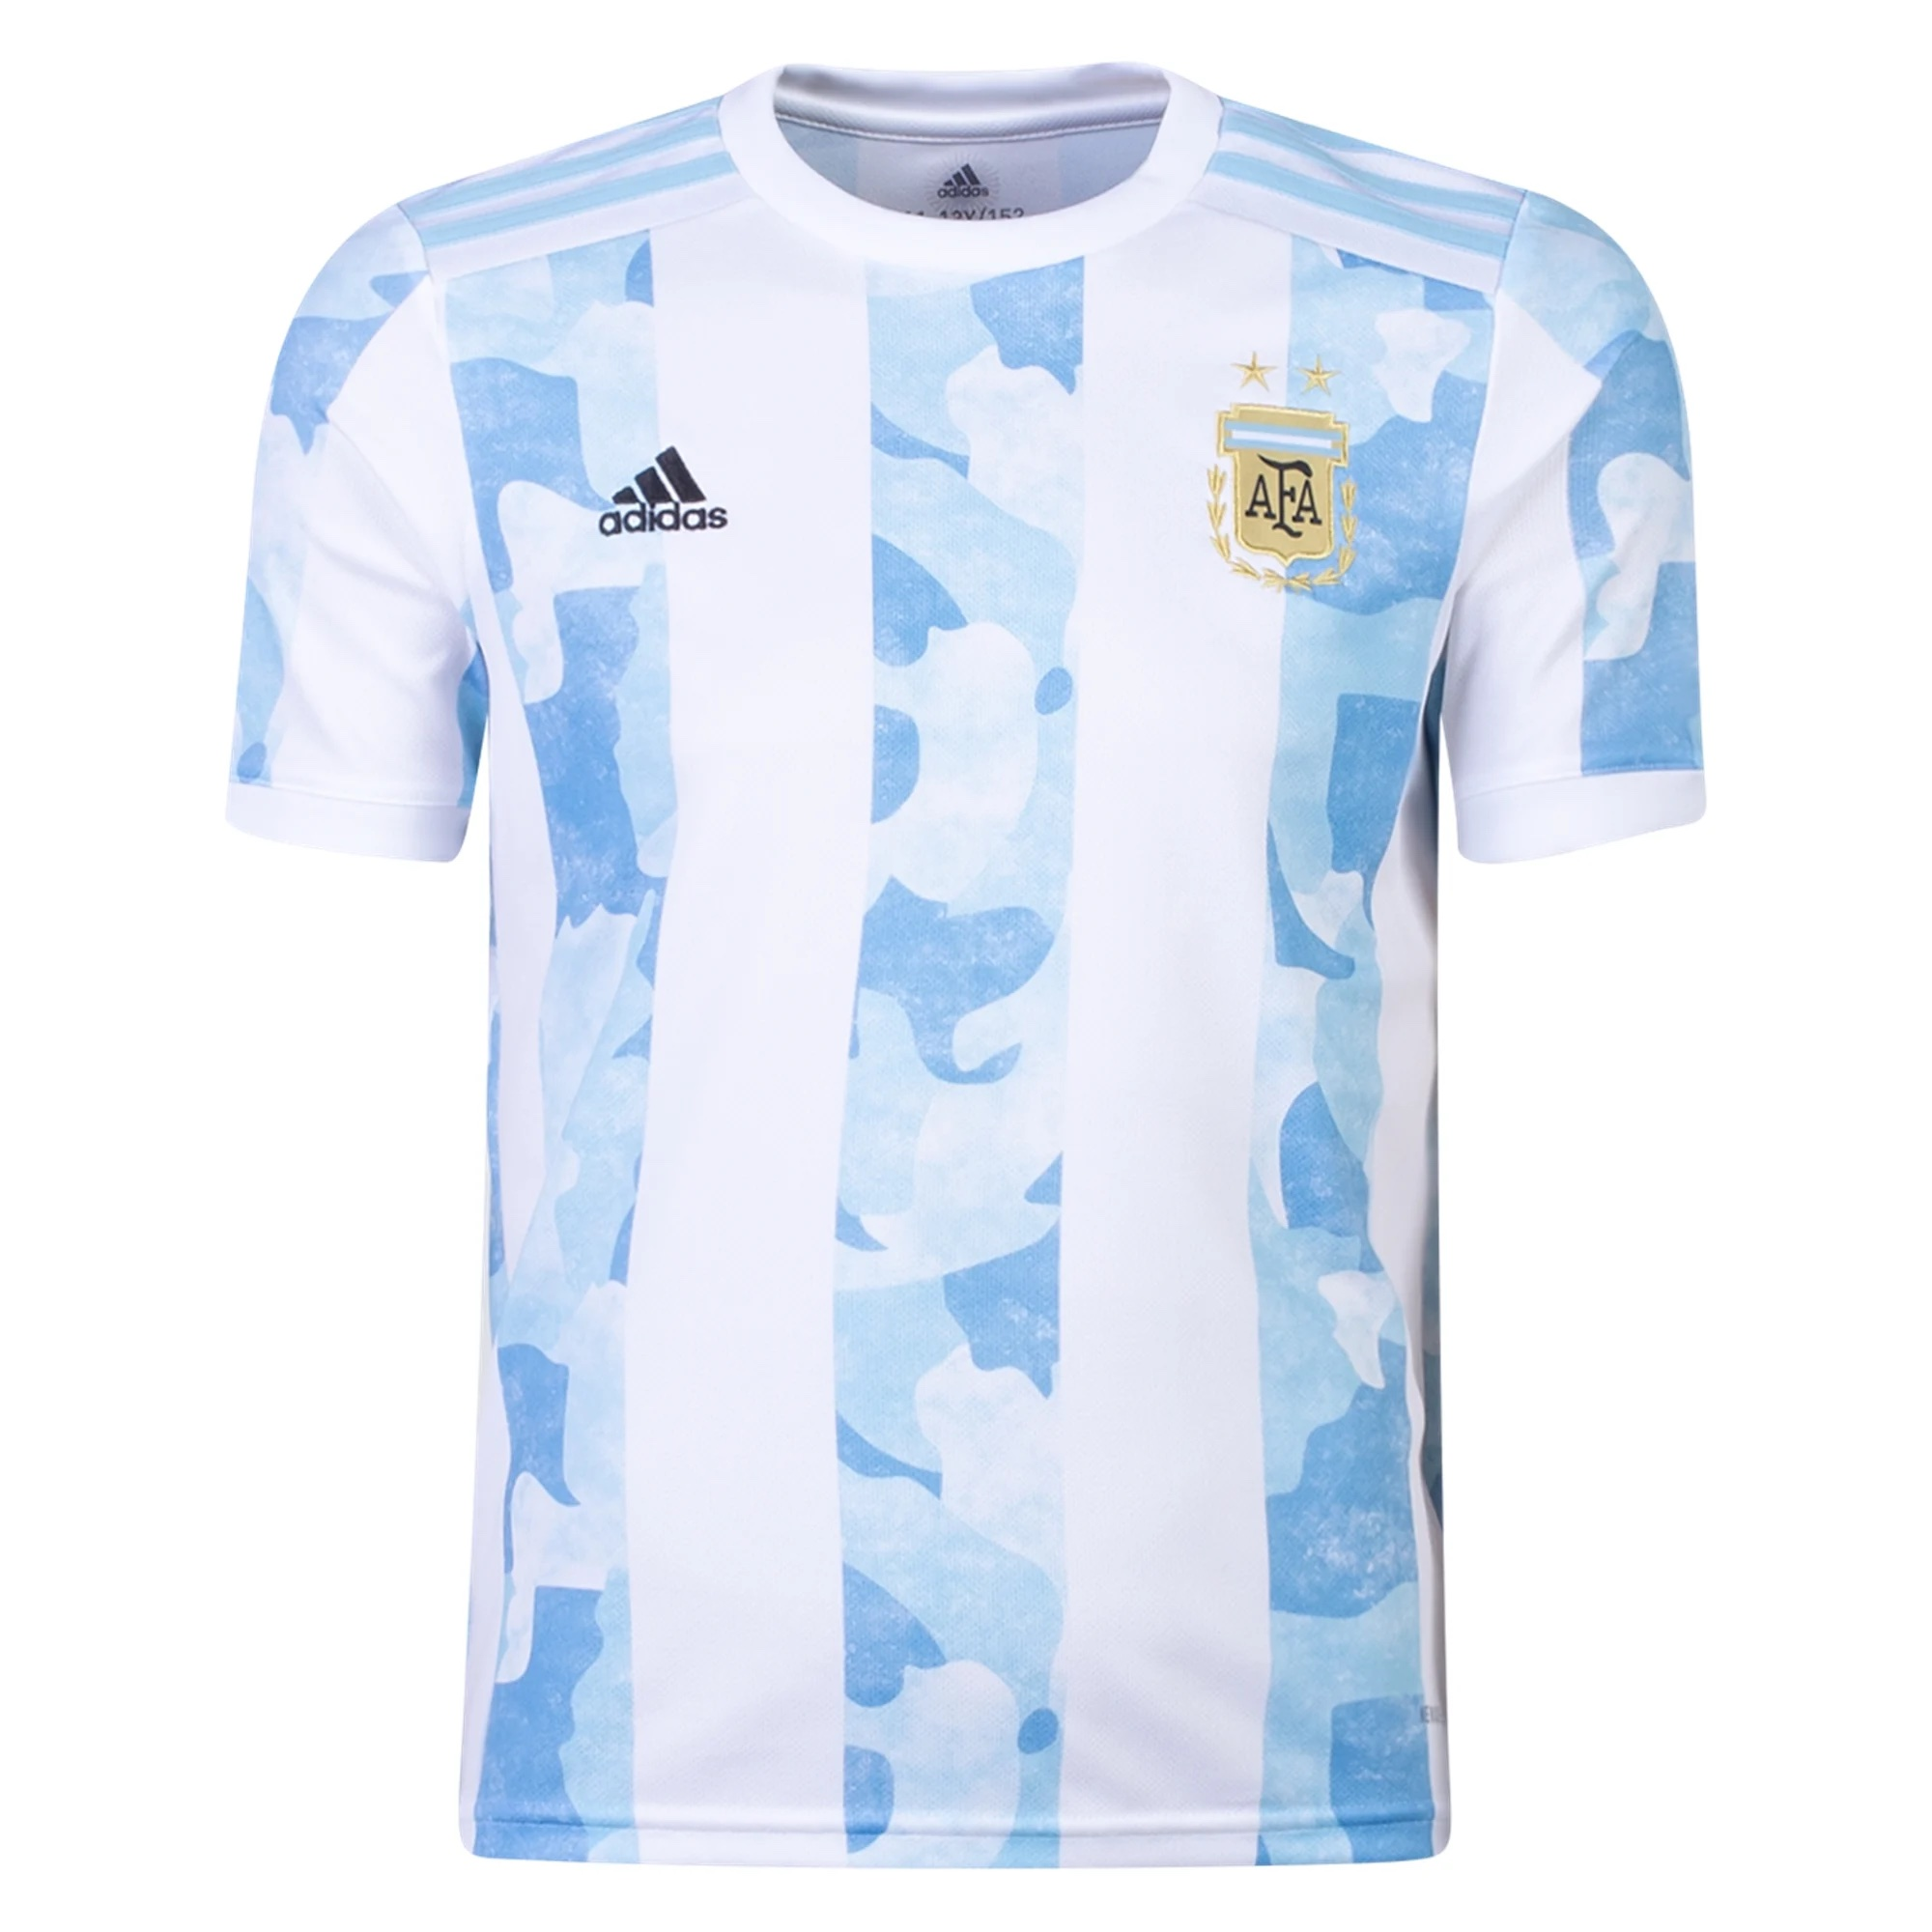 adidas Argentina Youth Home Jersey 2021/22